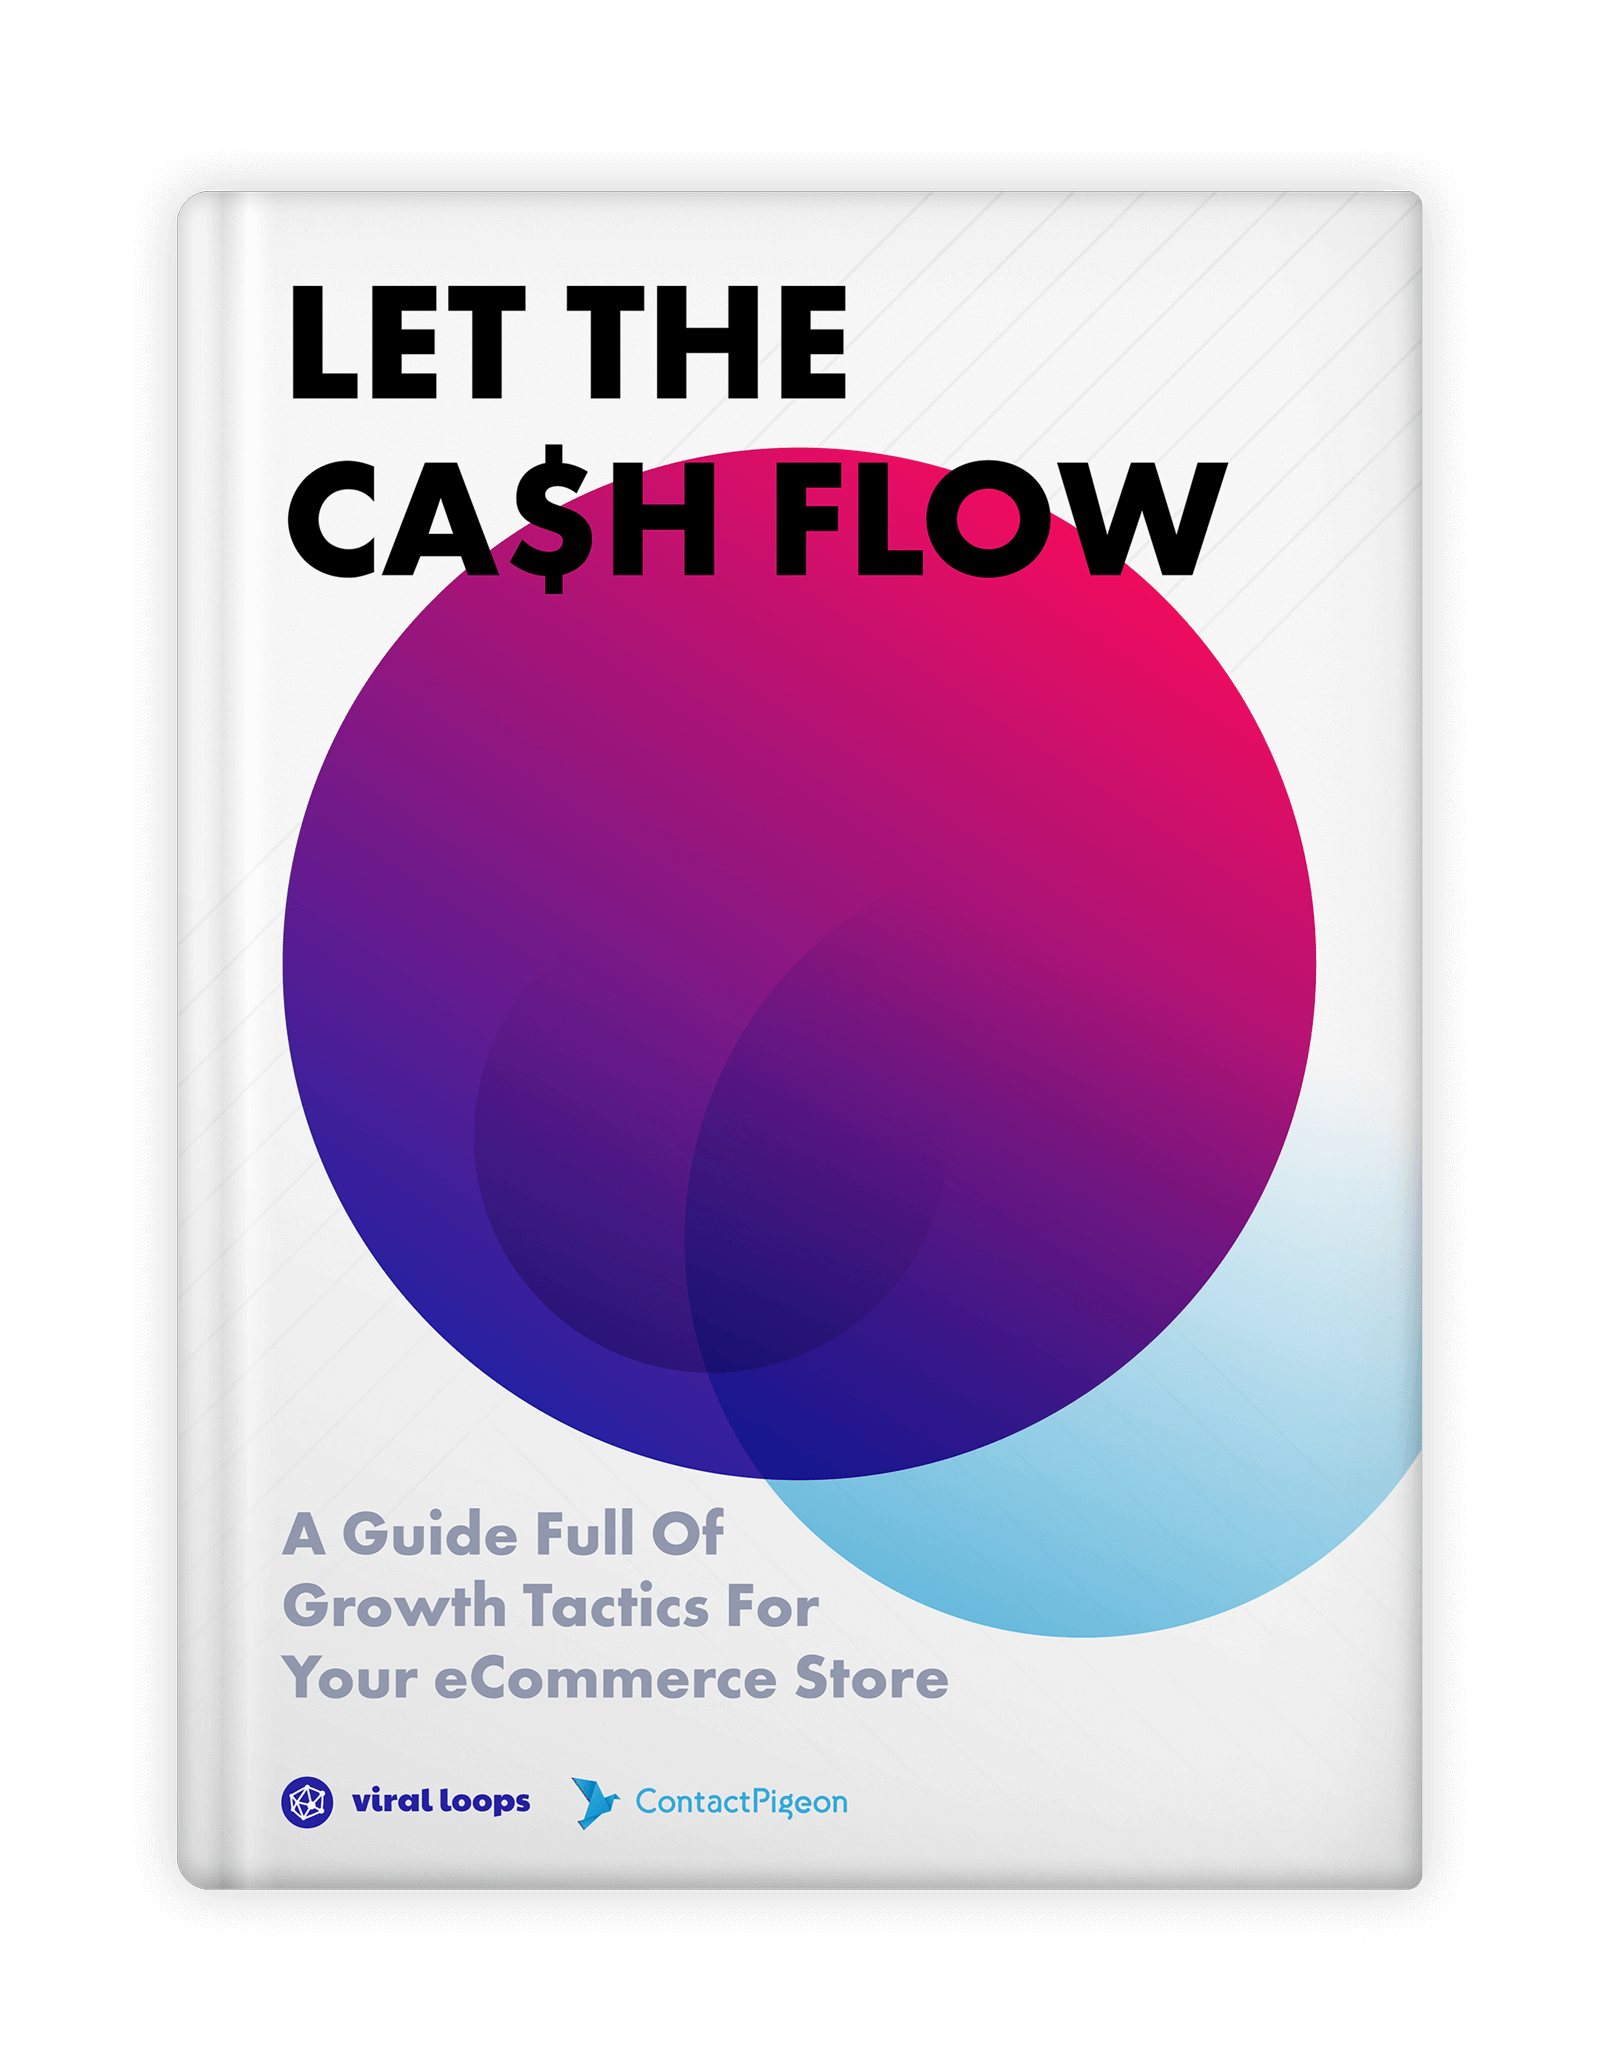 let-the-ca$h-flow-ebook-1-1-mockup-tiny